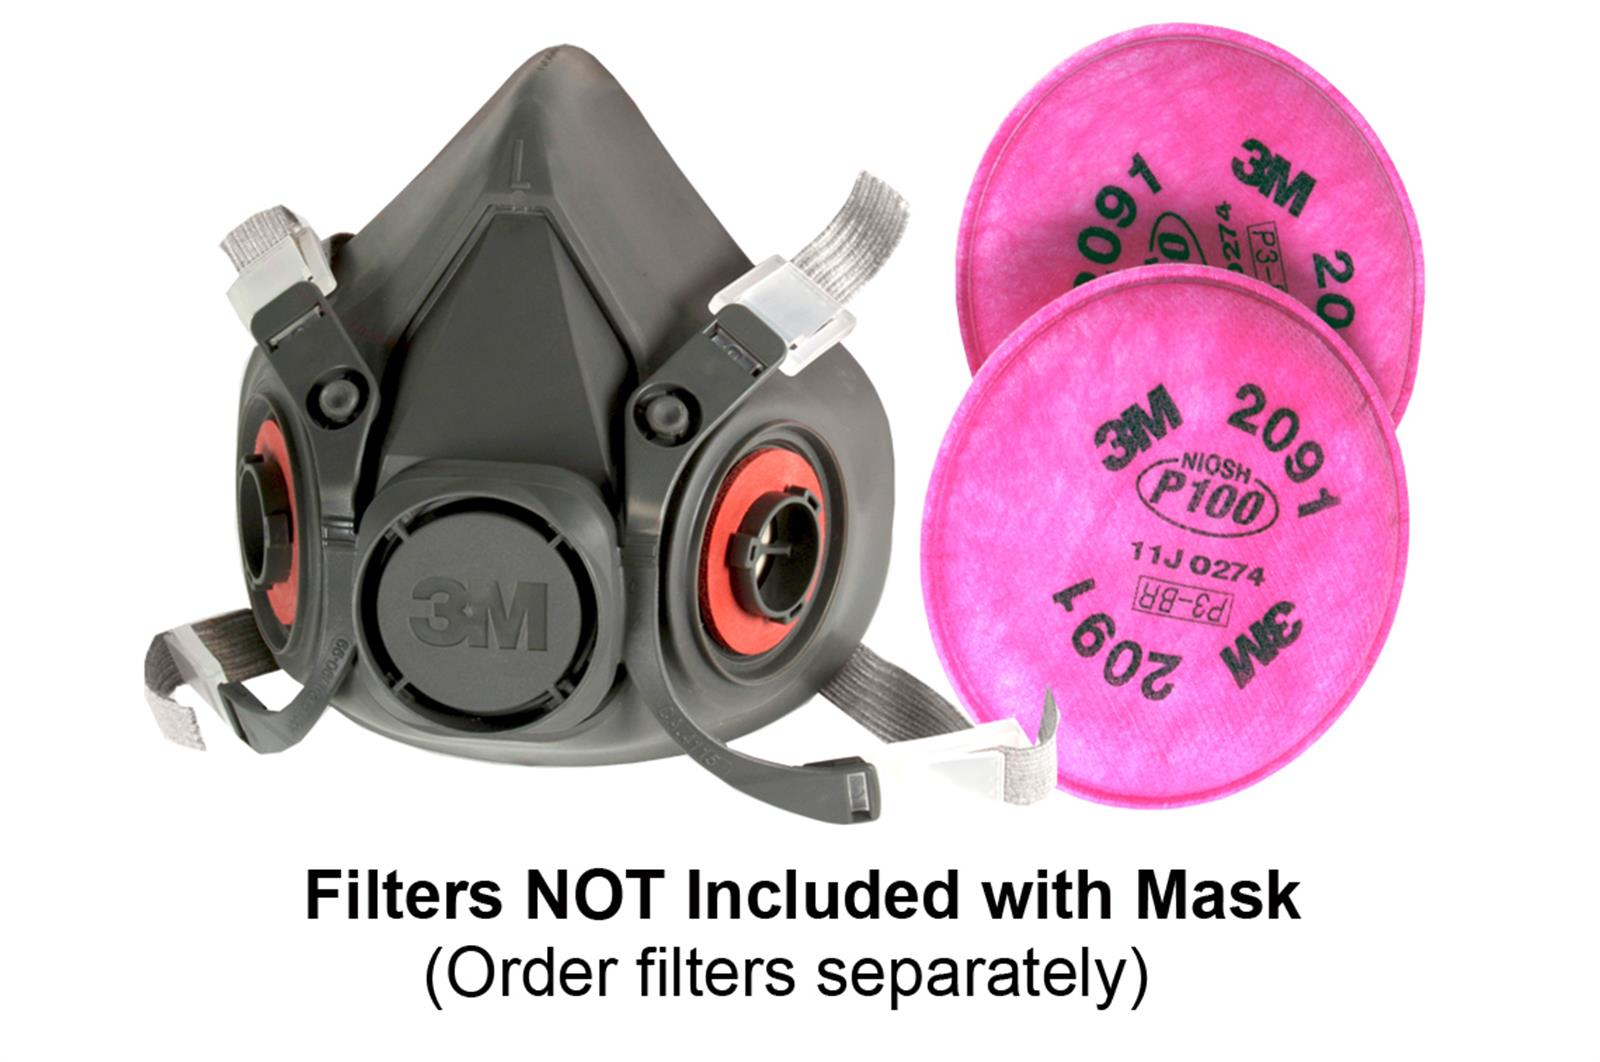 3m respirator mask filters